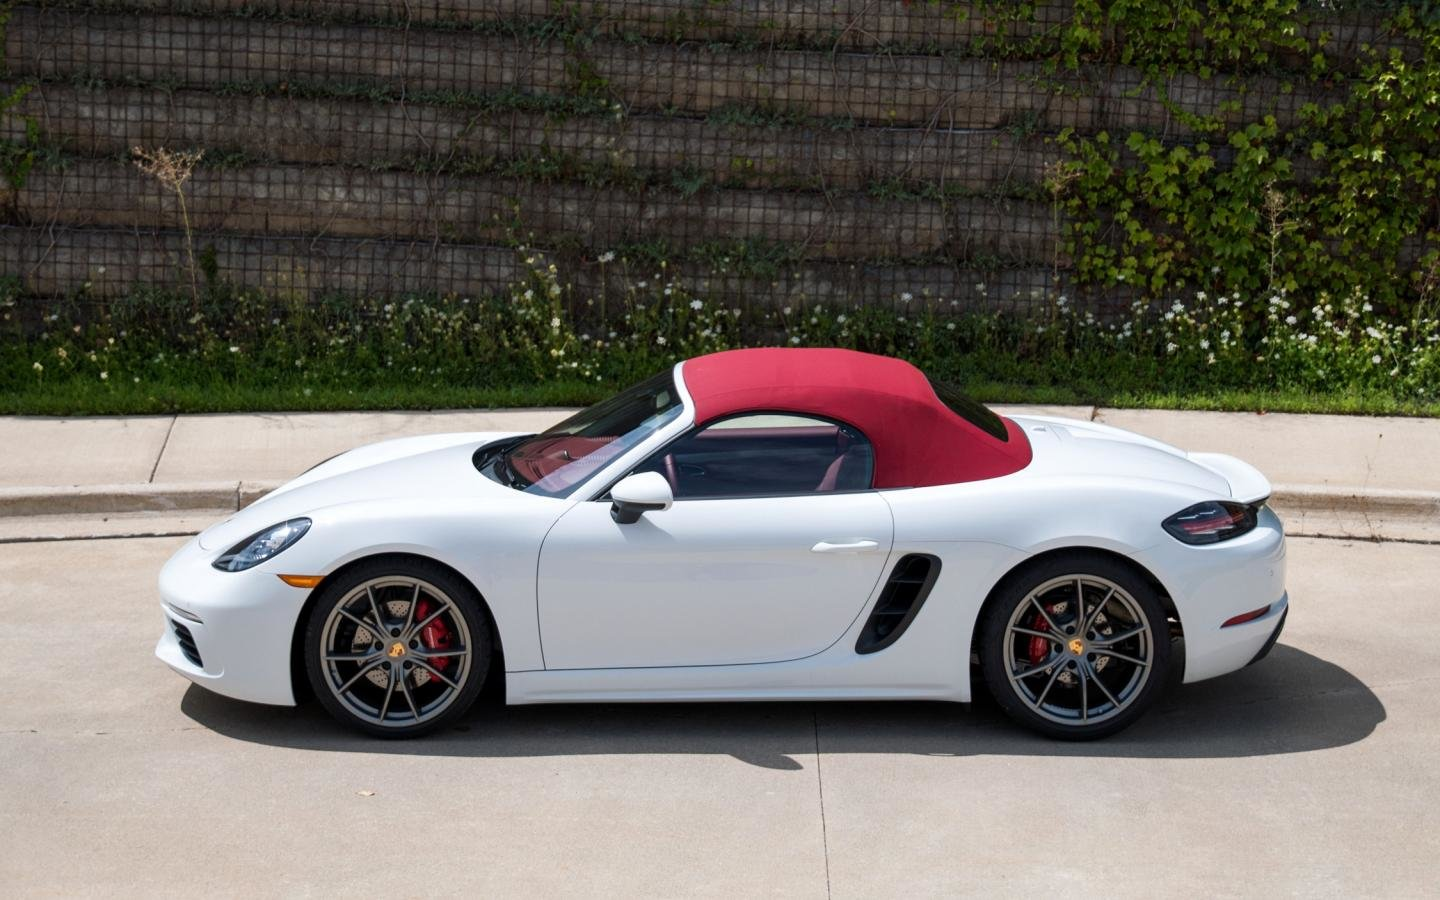 Best Porsche Boxster background ID:359534 for High Resolution hd 1440x900 PC